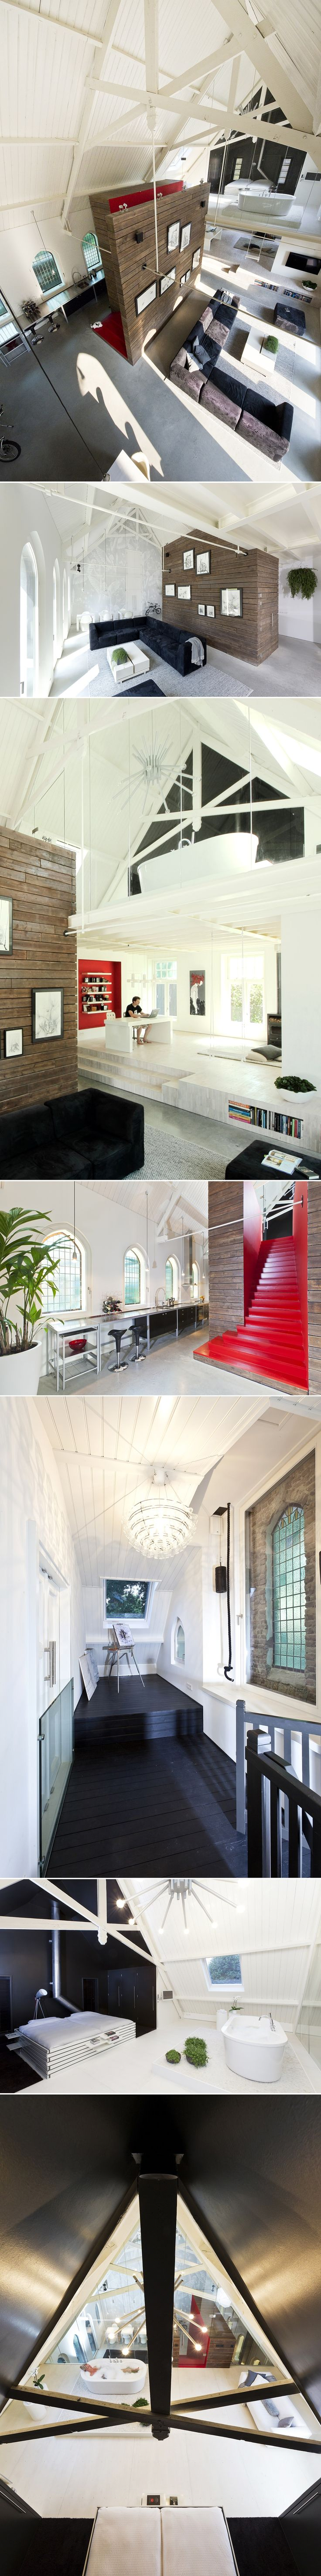 Church conversion in Haarlo the Netherlands by LKSVDD Architects